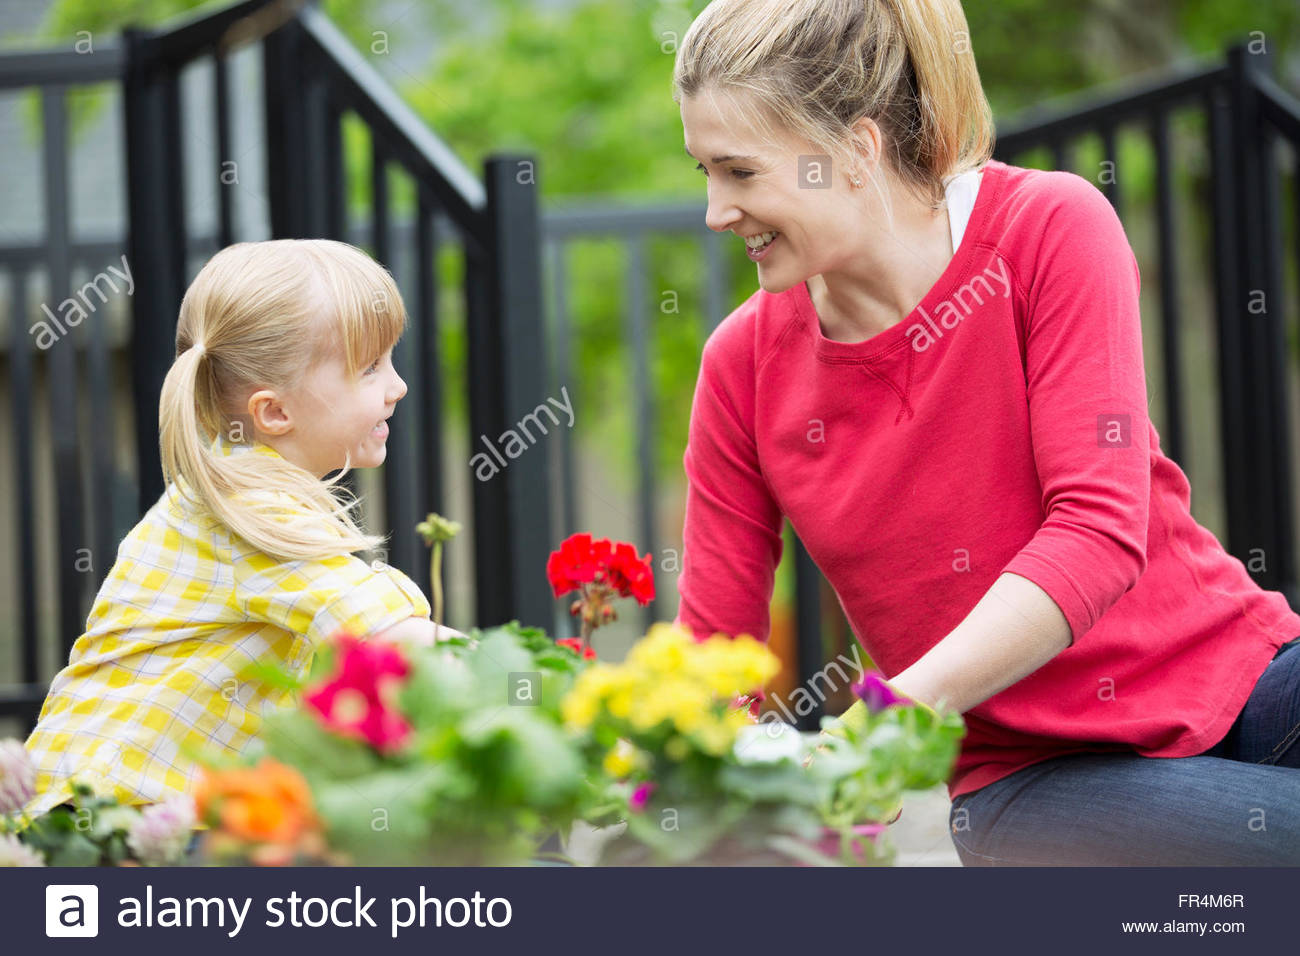 mom and 5 year old daughter planting flower bed - Stock Image